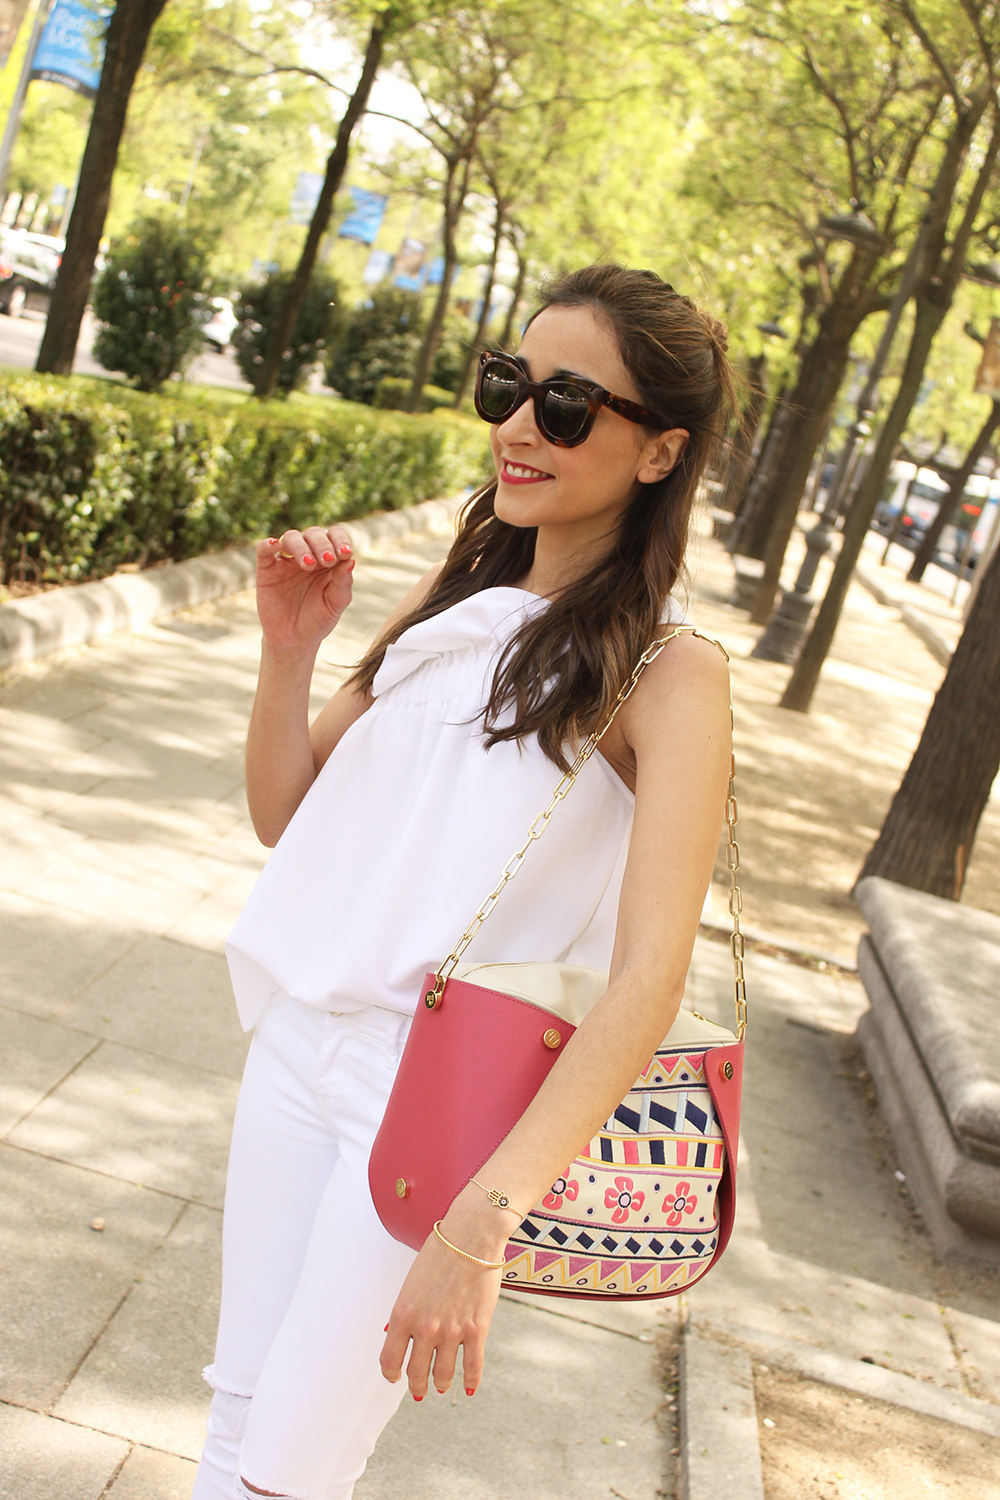 white outfit ripped jeans asymmetrical top pamapamar céline sunnies massimo dutti sandals fashion style09